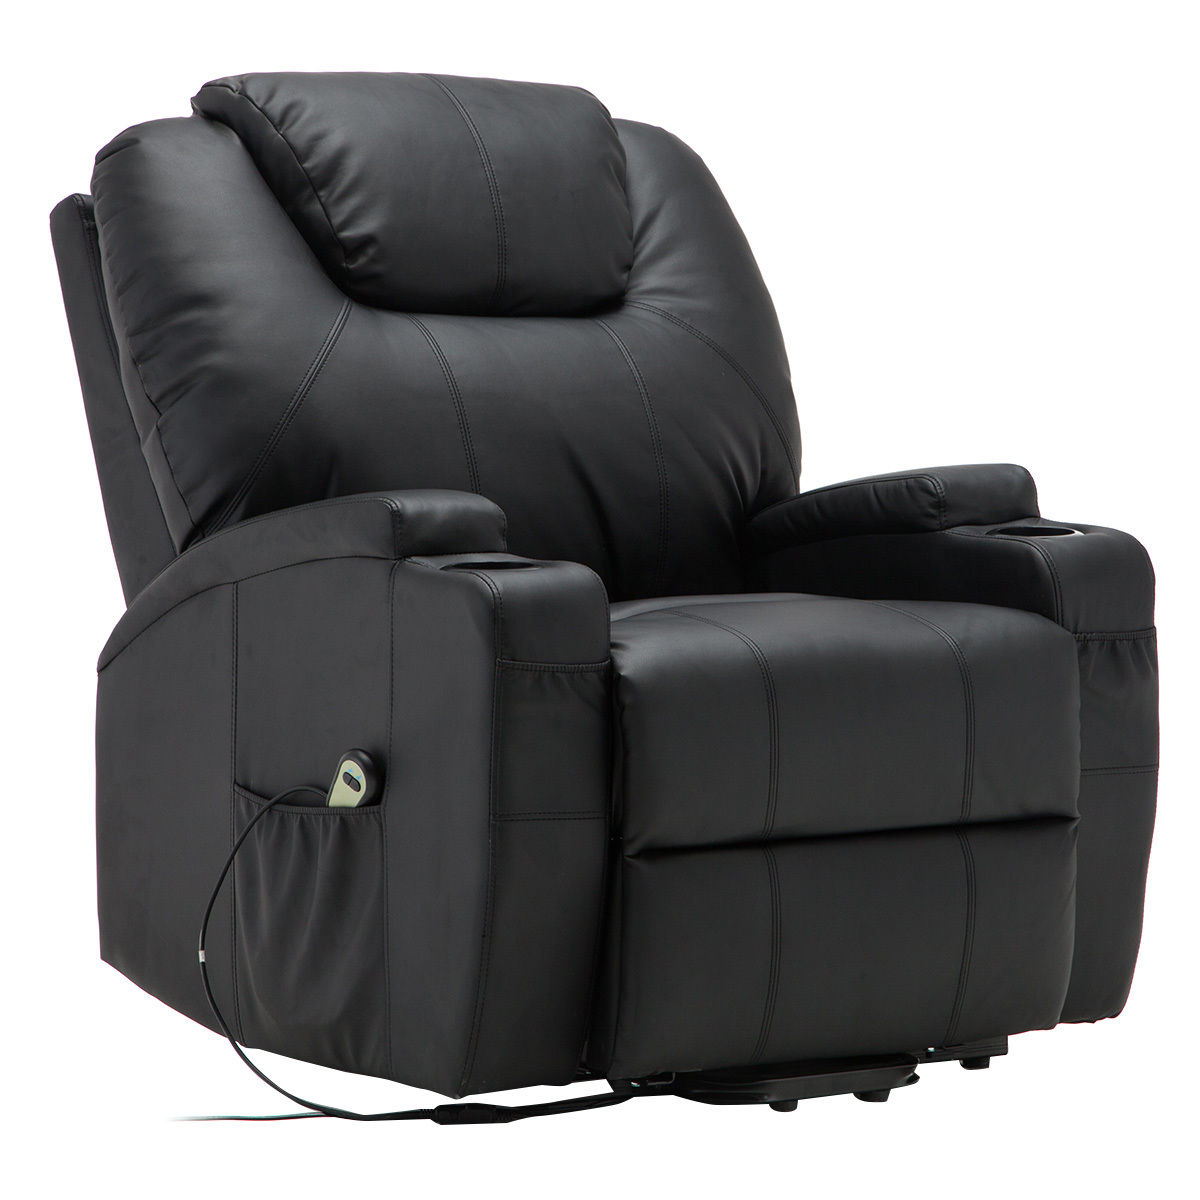 Costway Electric Lift Power Recliner Chair Heated Massage Sofa Lounge w/ Remote Control  sc 1 st  Walmart & Costway Electric Lift Power Recliner Chair Heated Massage Sofa ... islam-shia.org